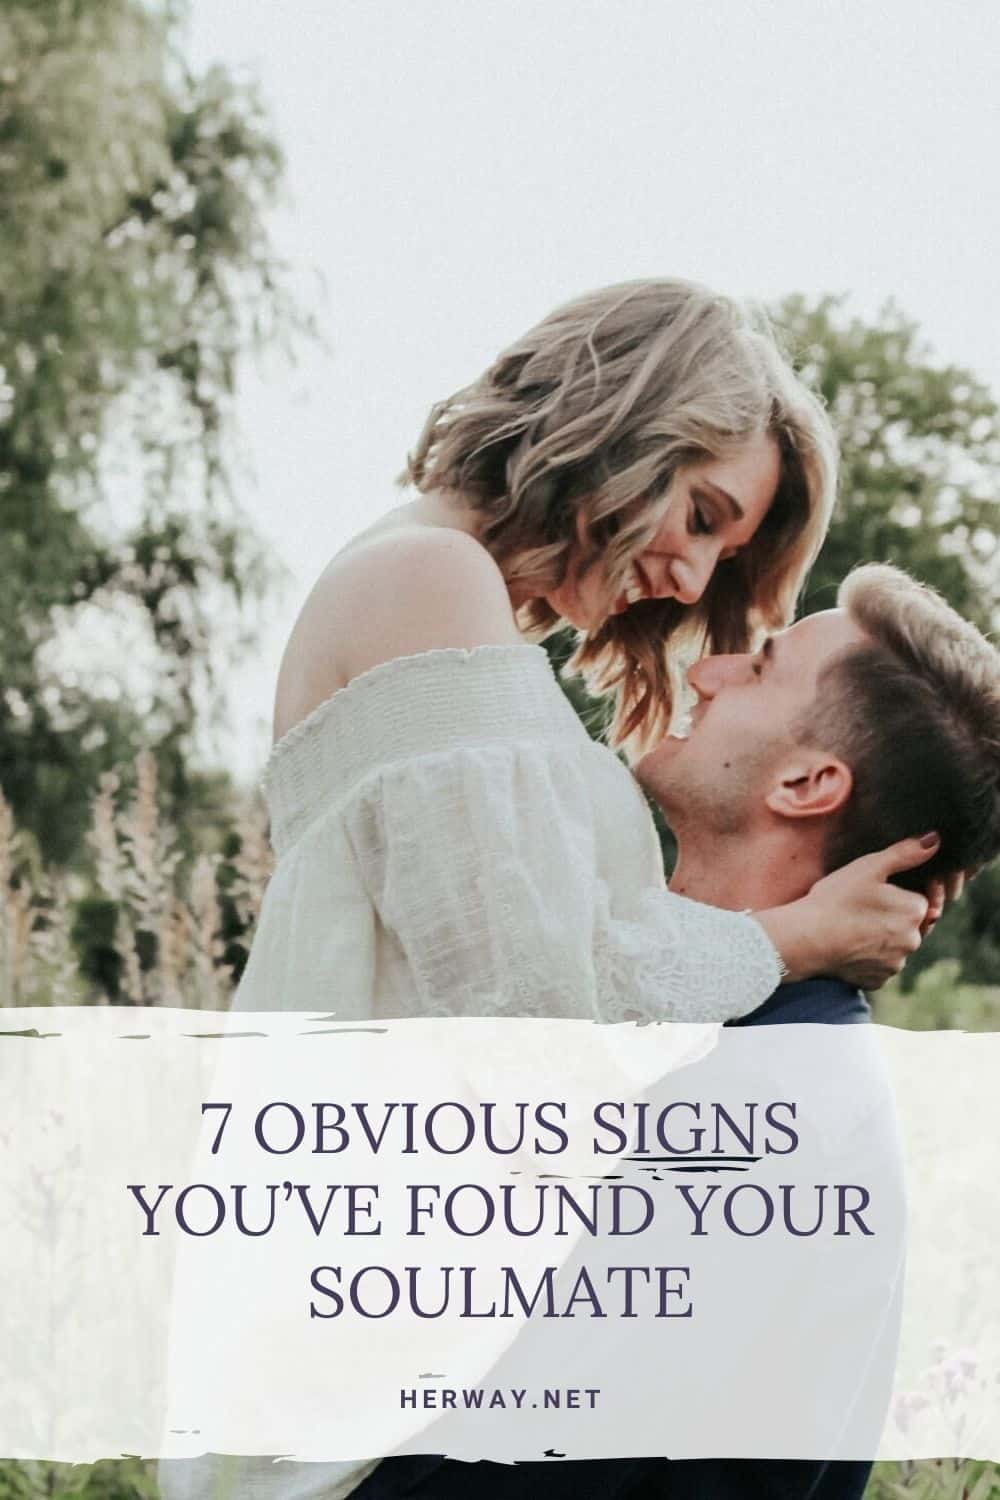 7 OBVIOUS SIGNS YOU'VE FOUND YOUR SOULMATE